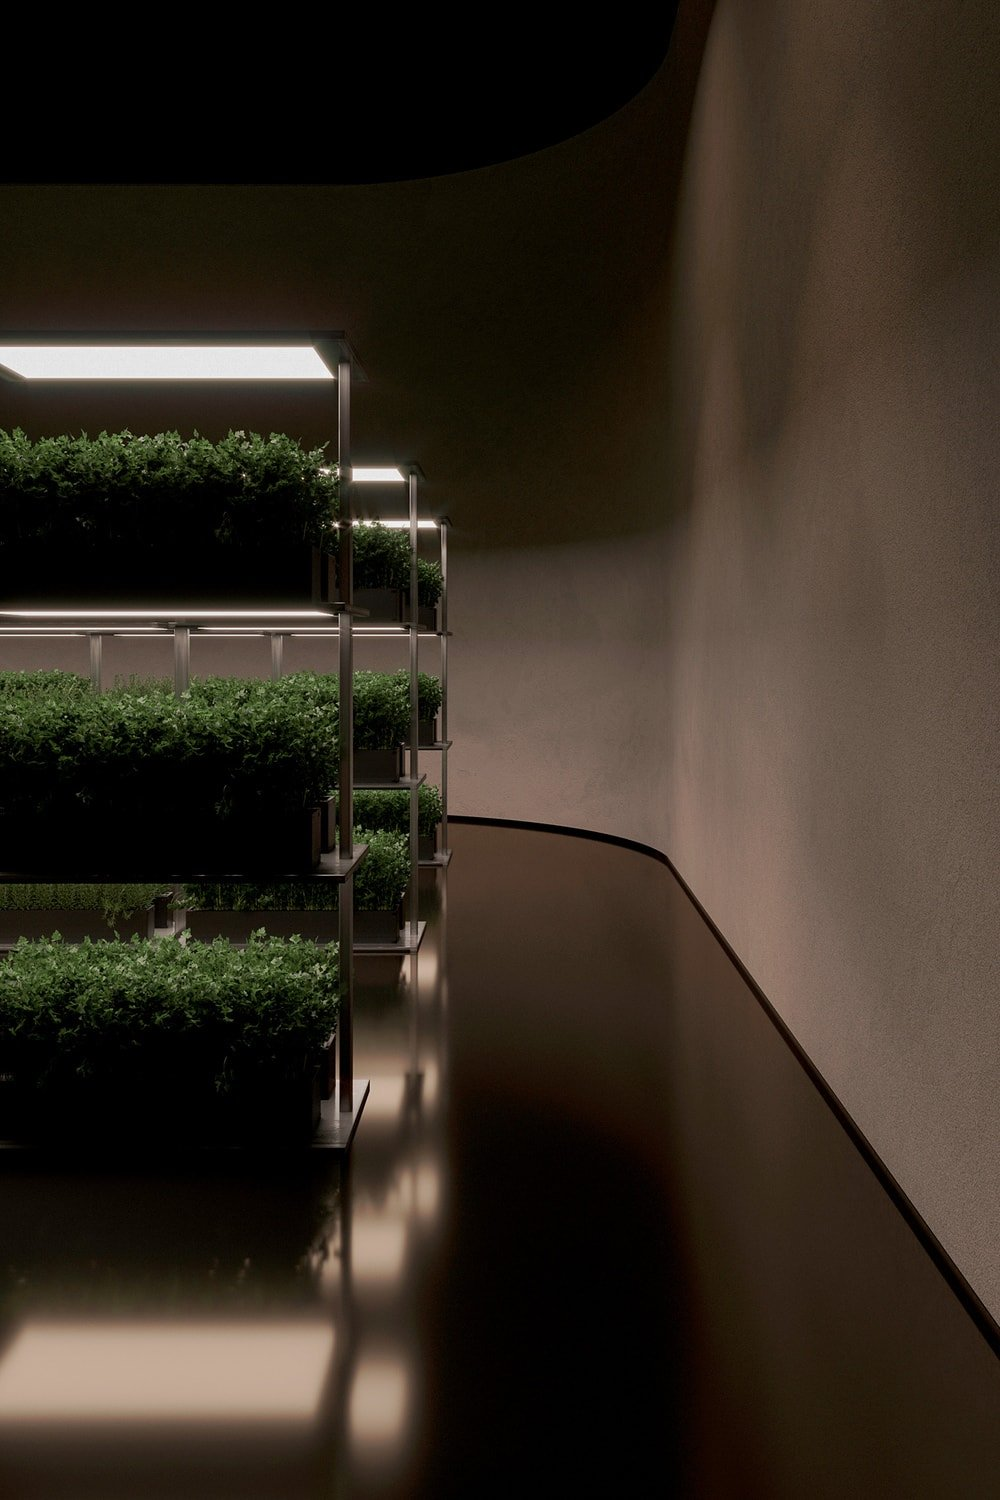 These are placed on large metal structures that have three tiers of shelves for the plants.